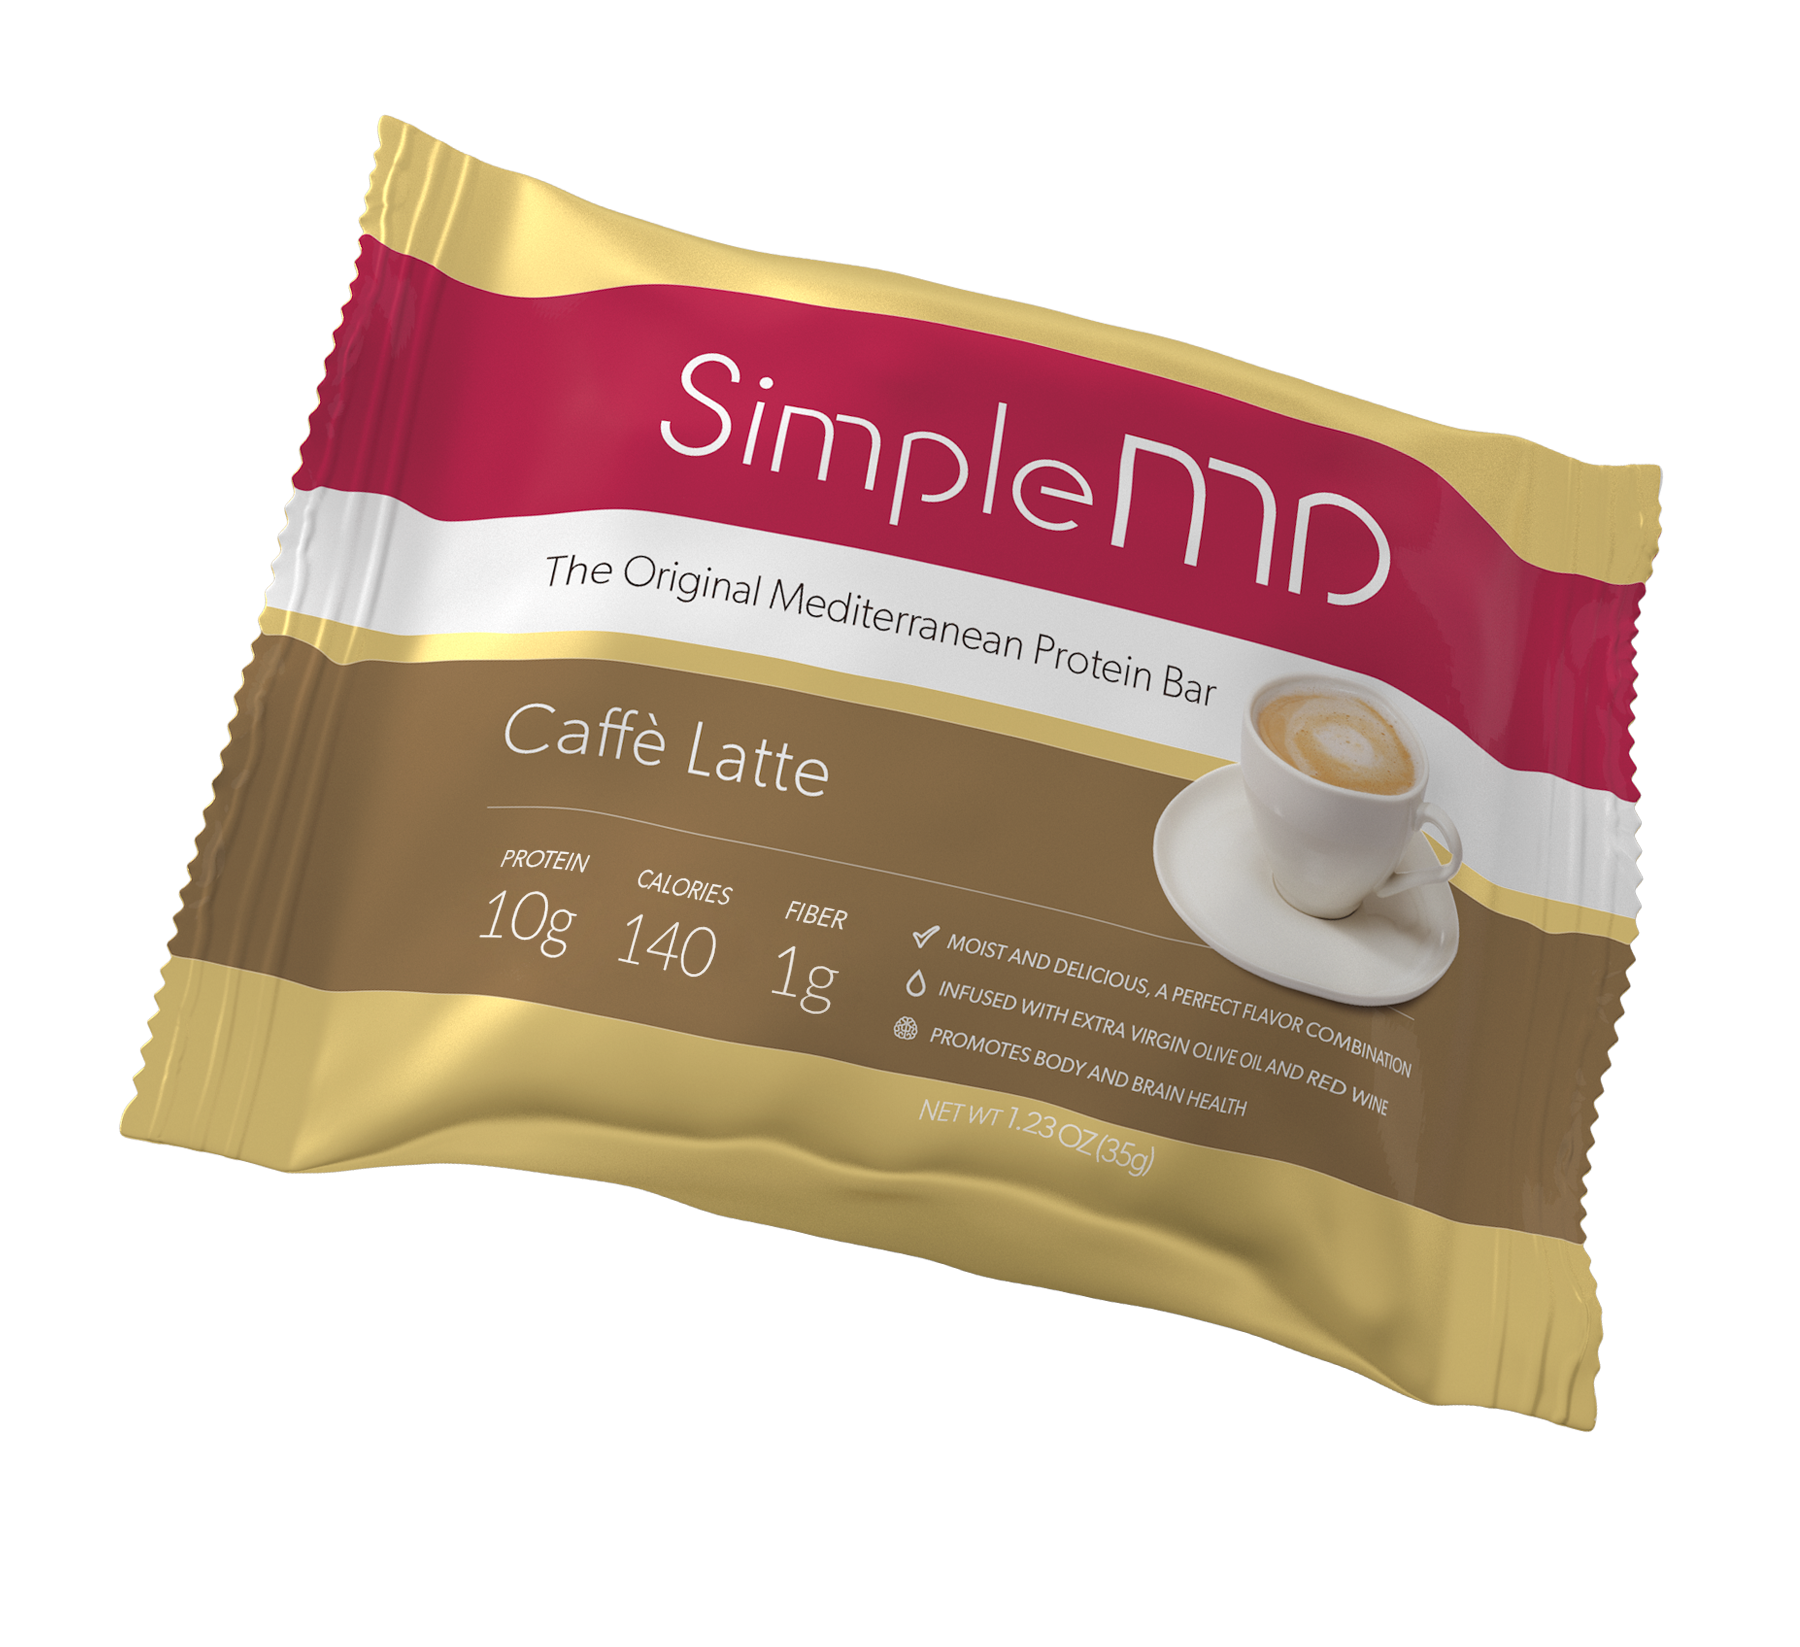 Start your day off with a Latte bar. Made with coffee for an extra kick, the bar's delicate flavor is packed with 10 grams of protein, 1 gram of fiber, and only 140 calories. Made with extra virgin olive oil and red wine. Gluten-free, GMO-free and kosher.